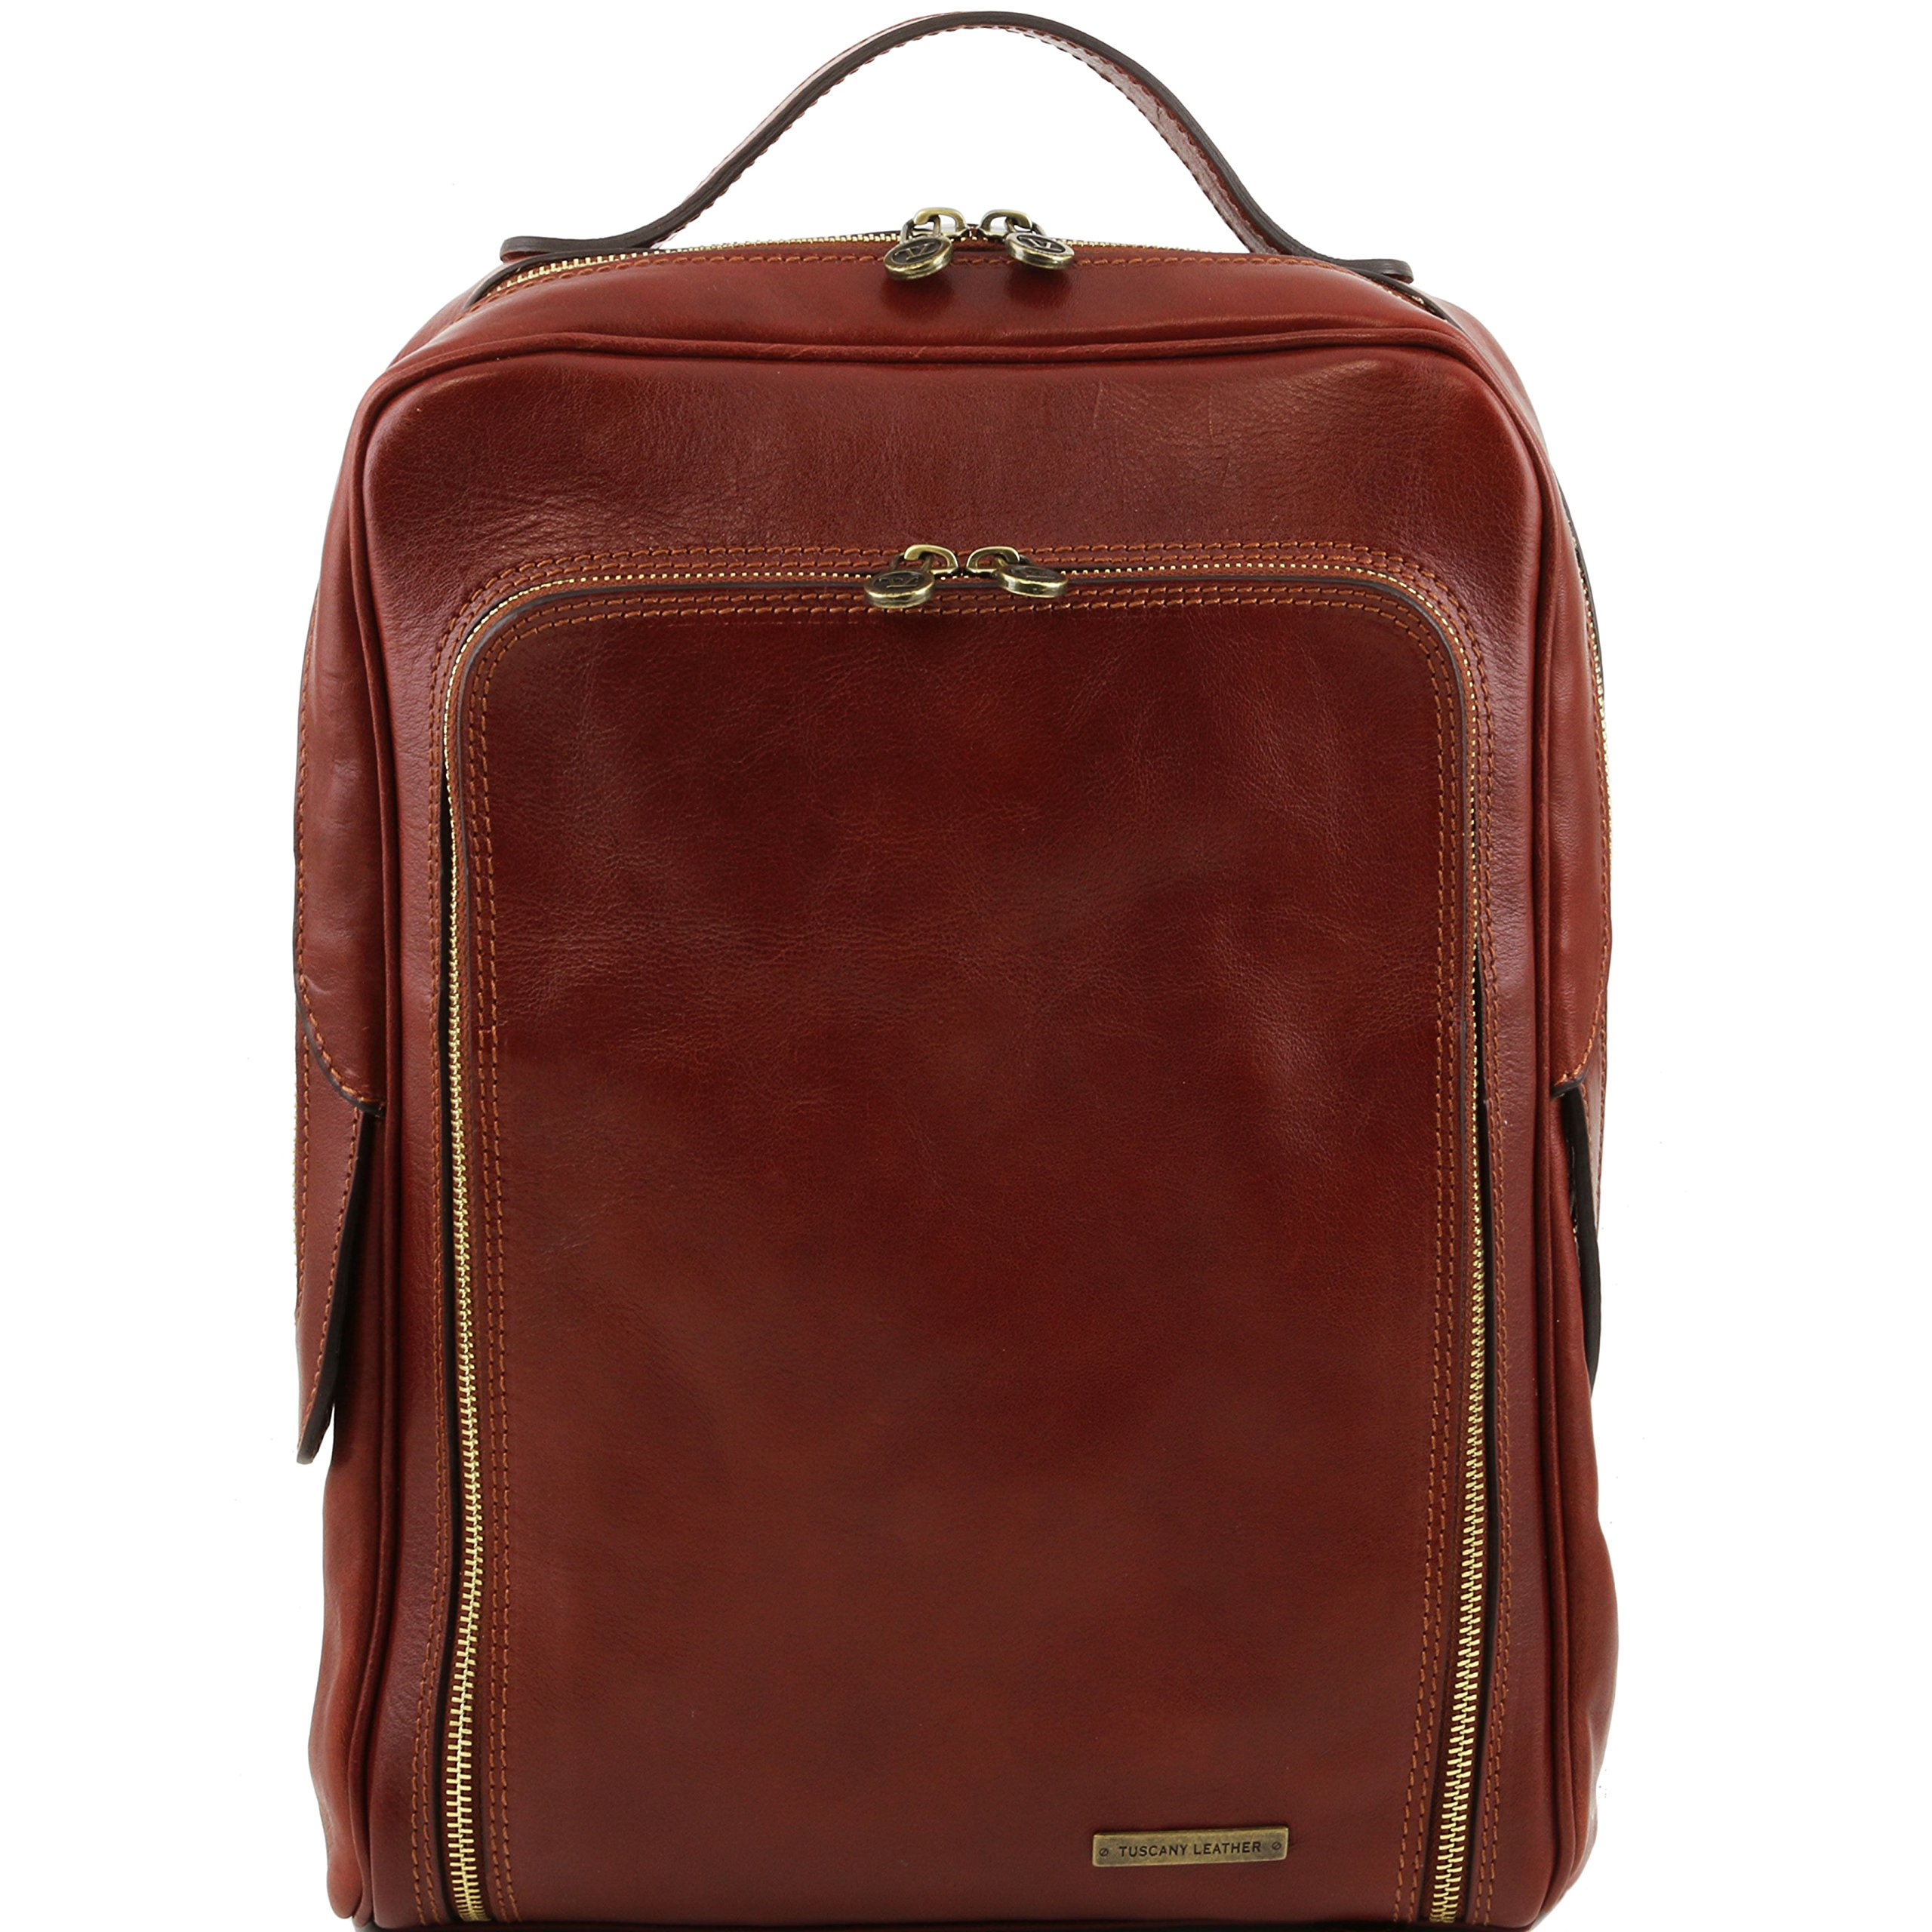 Tuscany Leather Bangkok Leather laptop backpack Brown Leather Backpacks